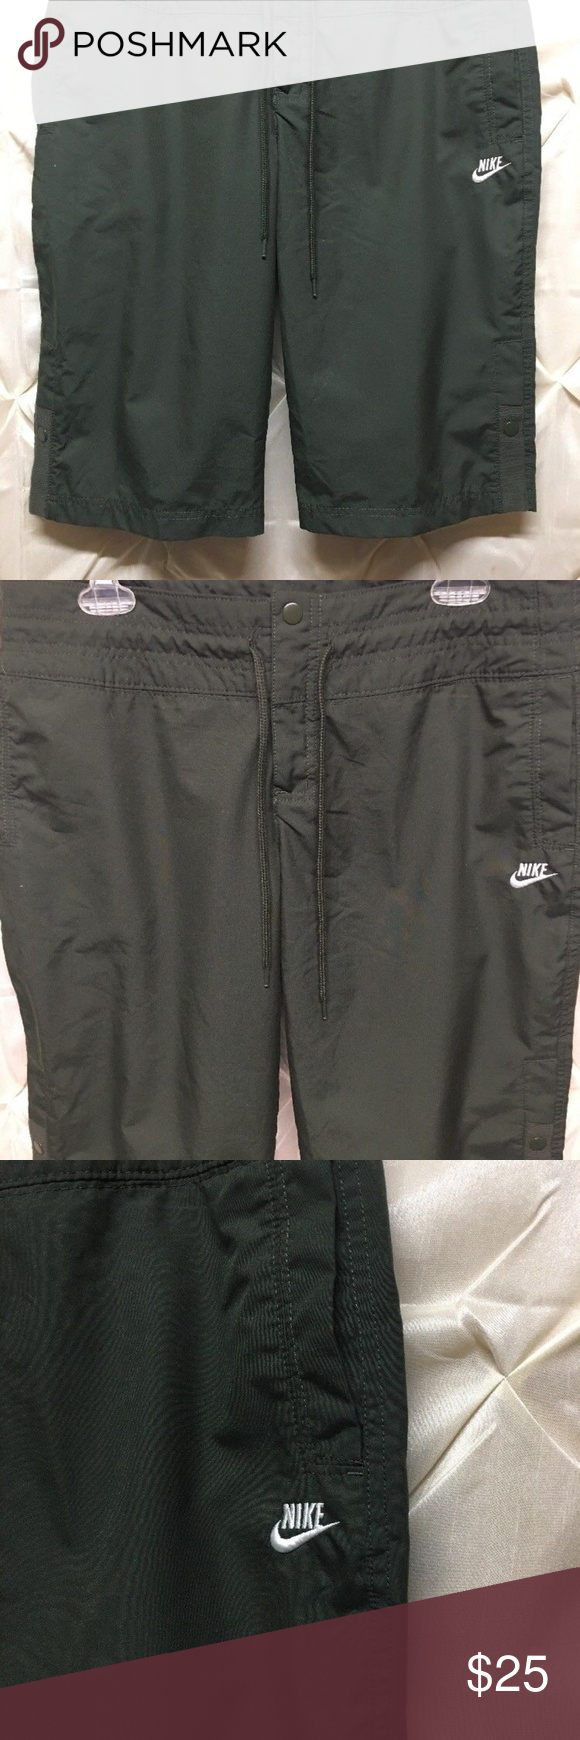 e16960a8186a1 mens NIKE sportswear shorts Olive Green Medium Men s Nike shorts size  medium waist 34 36. Features zipper front snap button with drawstring.